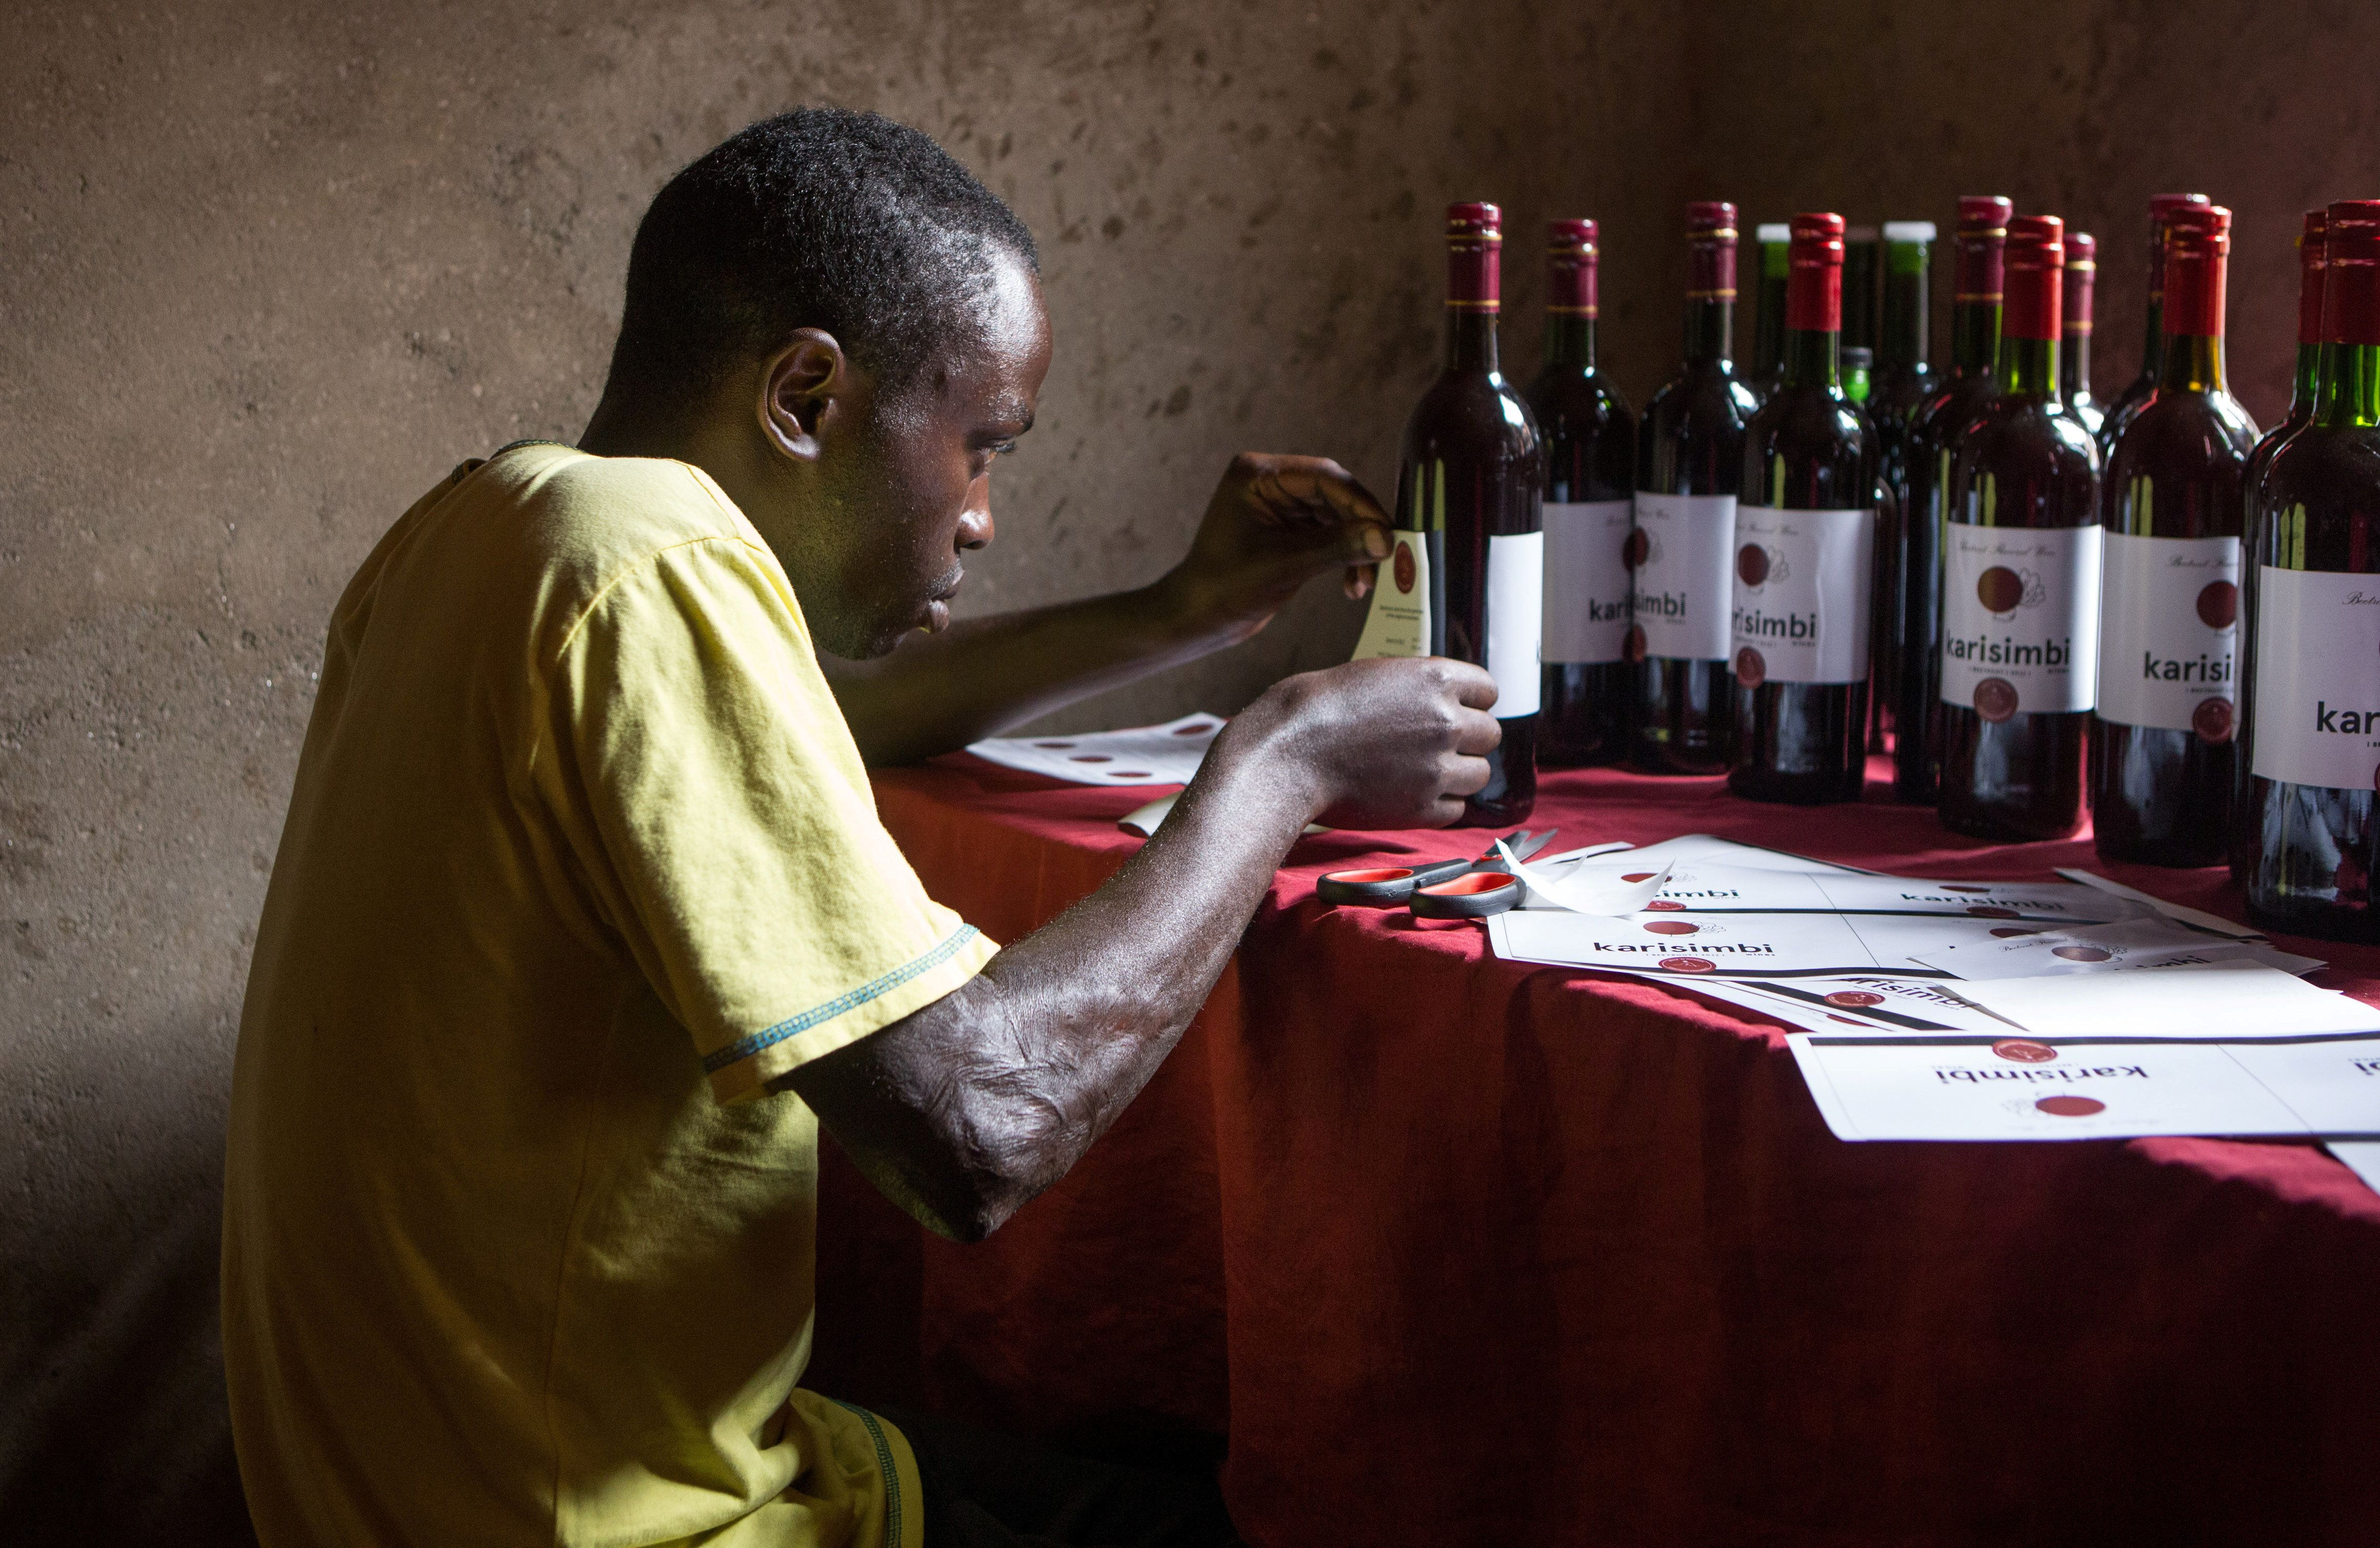 A worker labels bottles of wine from the juice of beetroot at a production stall in Rubavu district, Western province, Rwanda October 3, 2018. Pictures taken October 3, 2018. REUTERS/Jean Bizimana